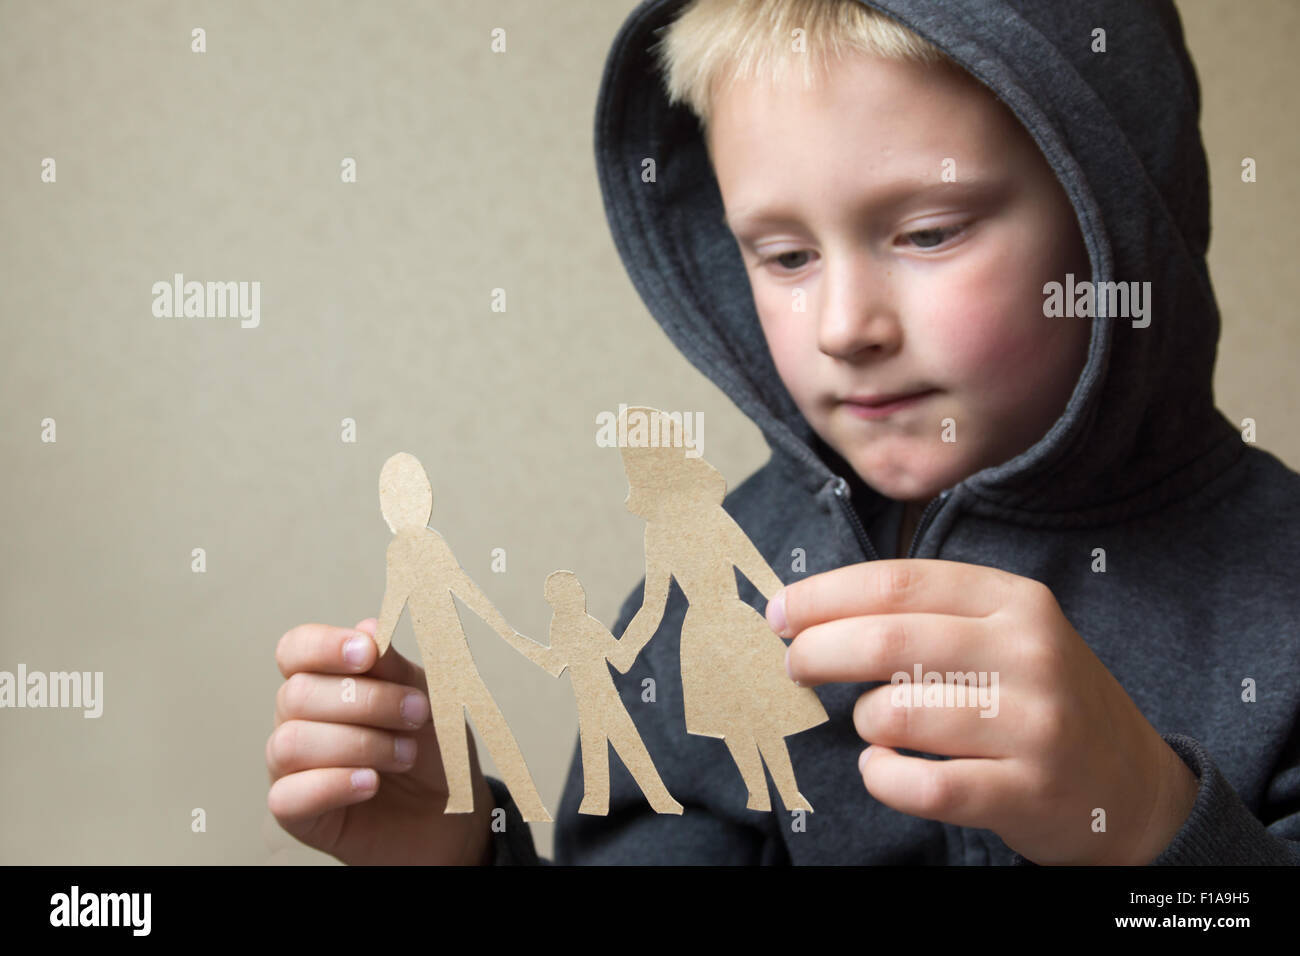 Confused child with paper family, family problems, divorce, suffer concept - Stock Image